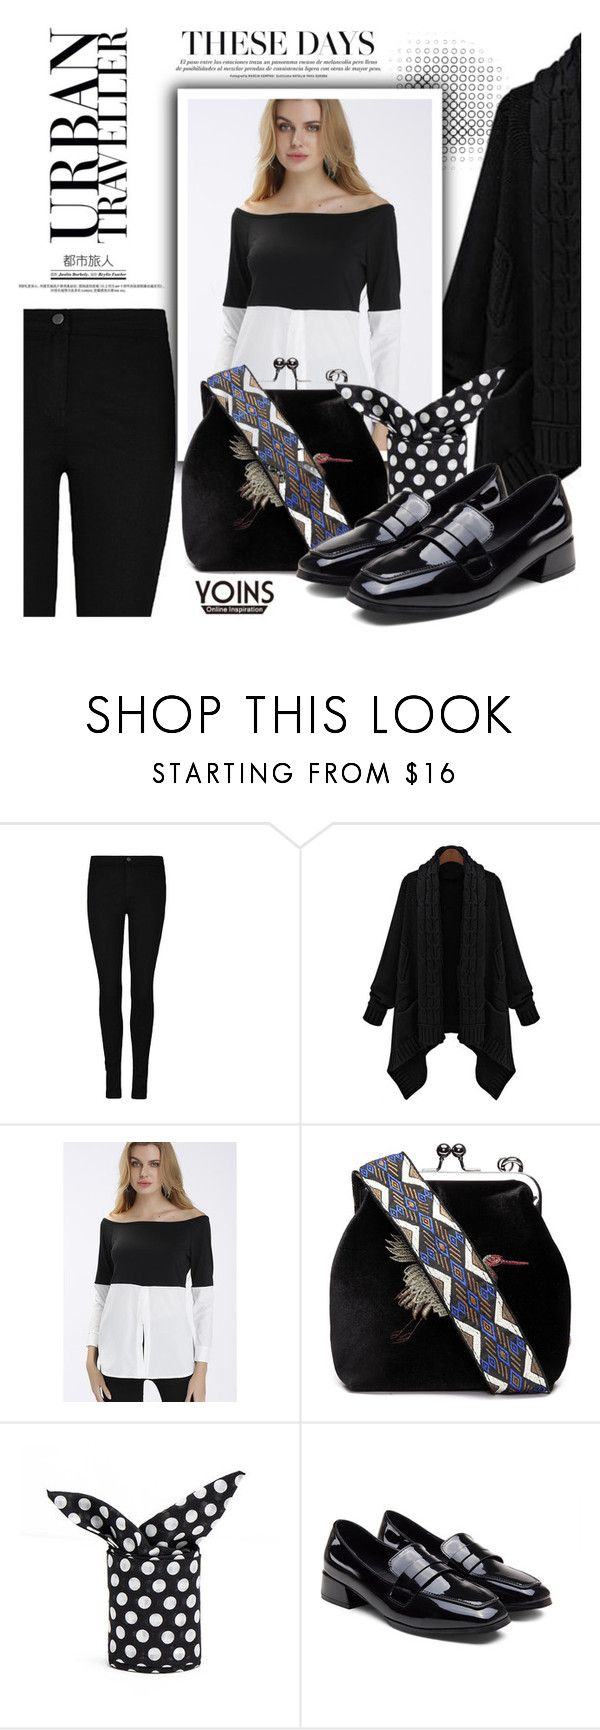 """""""YOINS (7/VI)"""" by samketina ❤ liked on Polyvore featuring yoins, yoinscollection and loveyoins"""